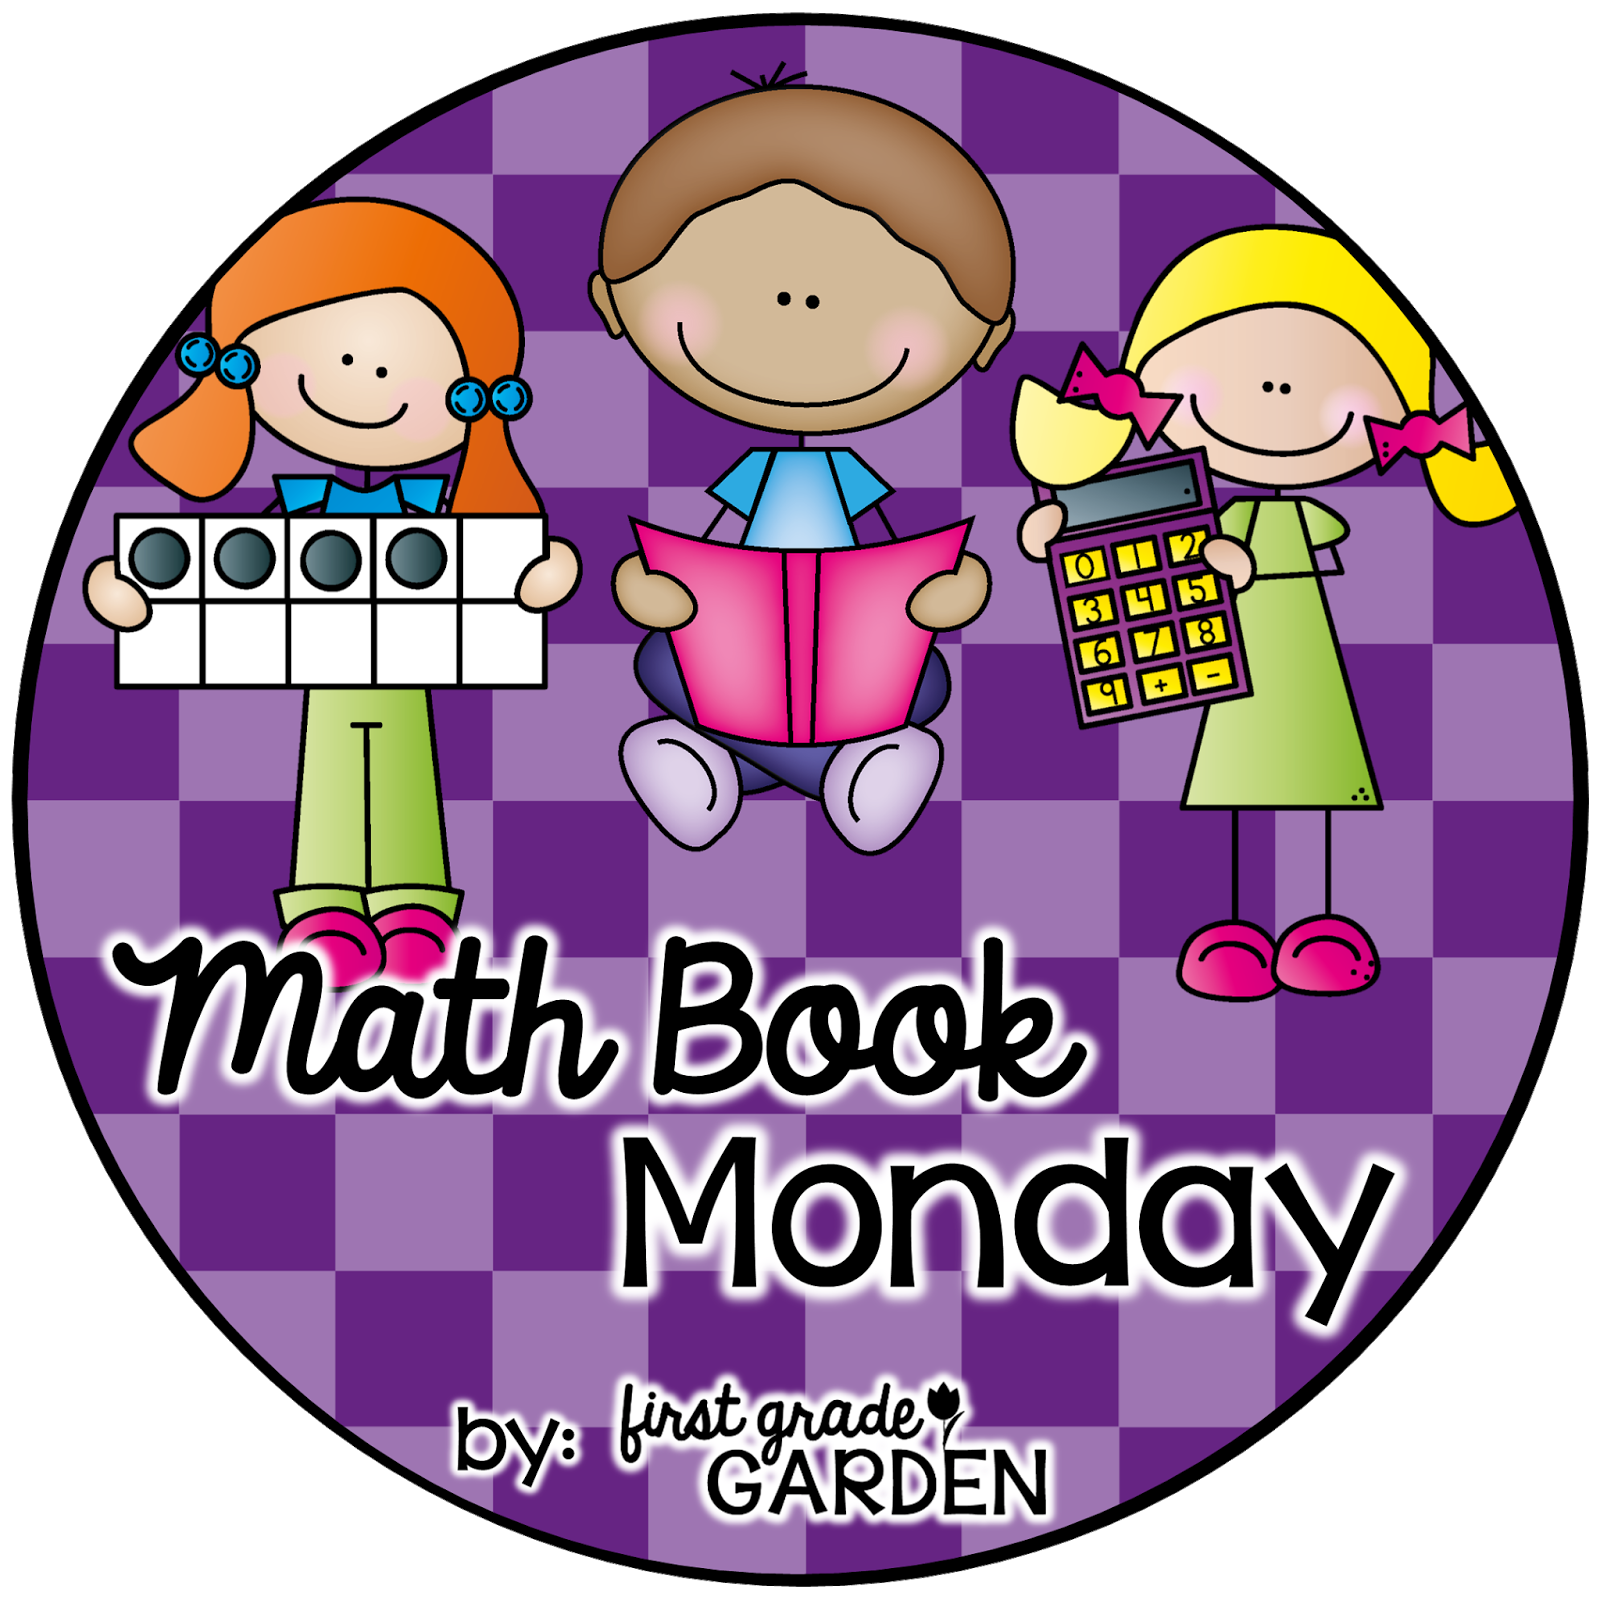 Cute math book clipart images graphic library download First Grade Garden: April 2015 graphic library download